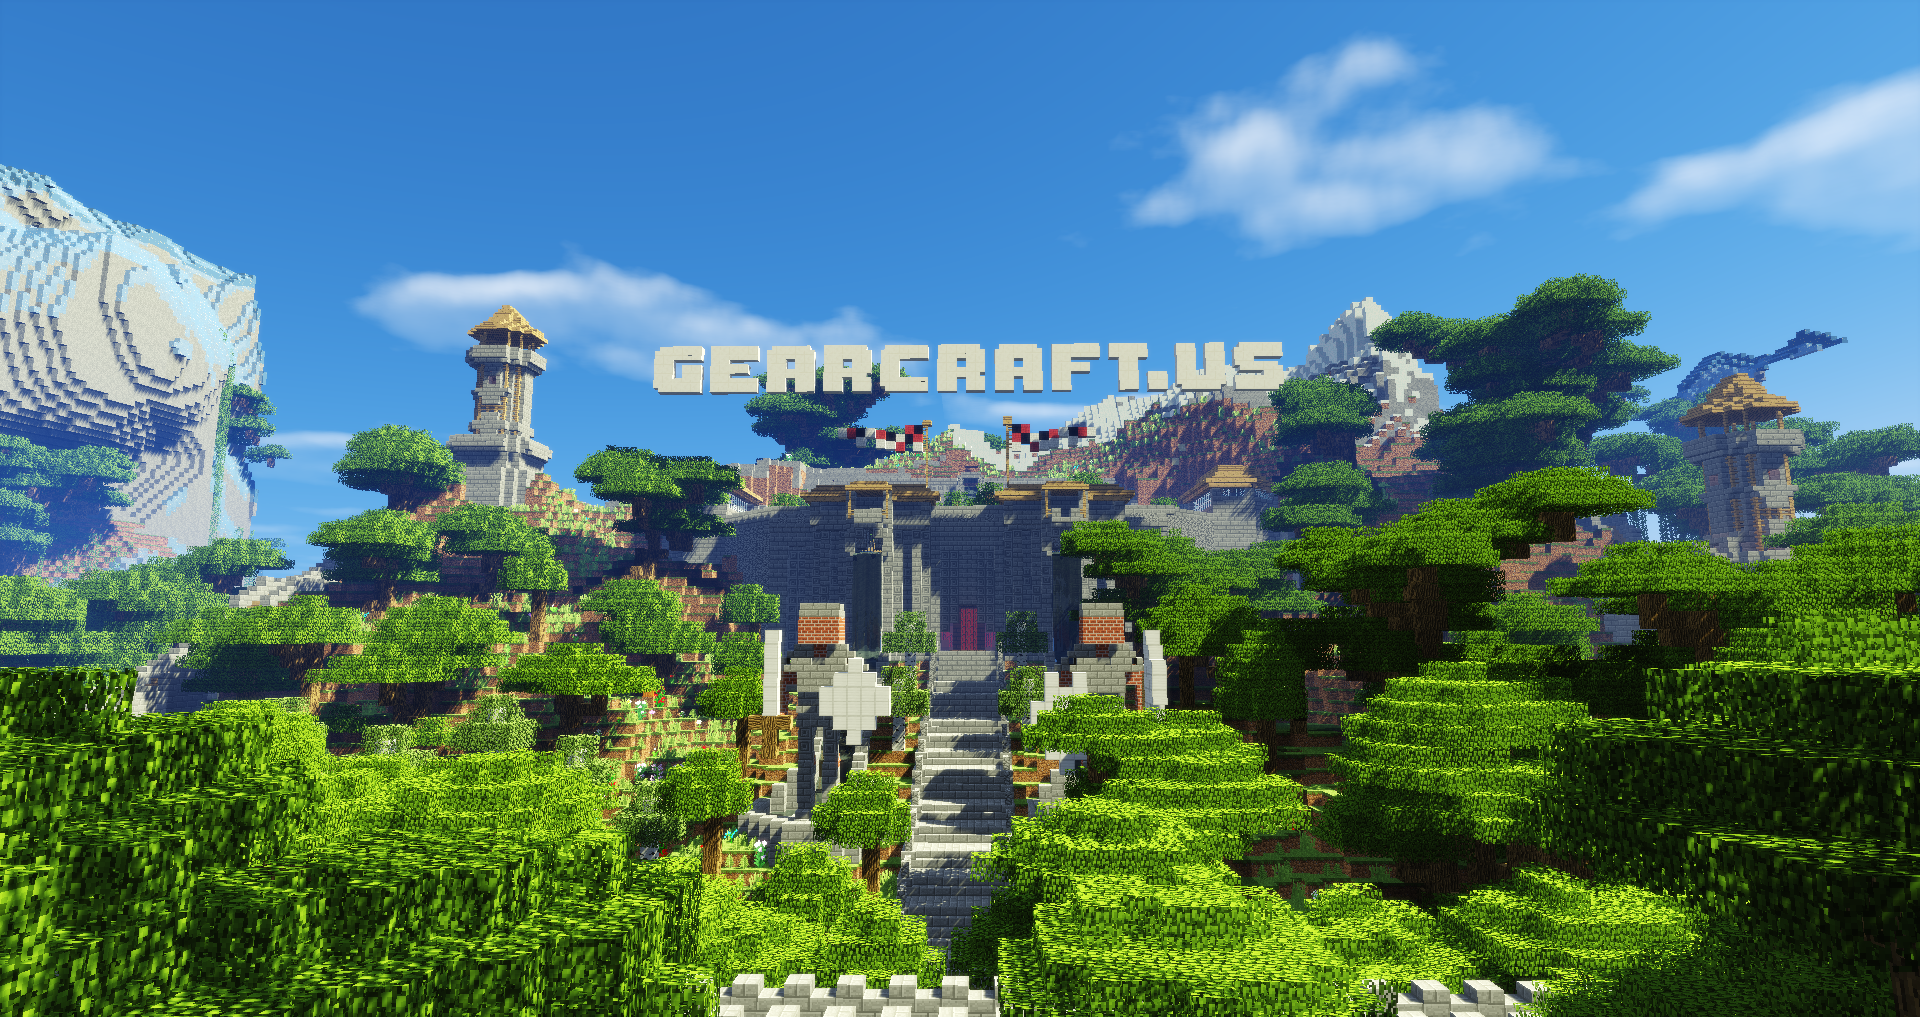 Life Nexus – Are These The Most Epic Shaders Out? | Gearcraft